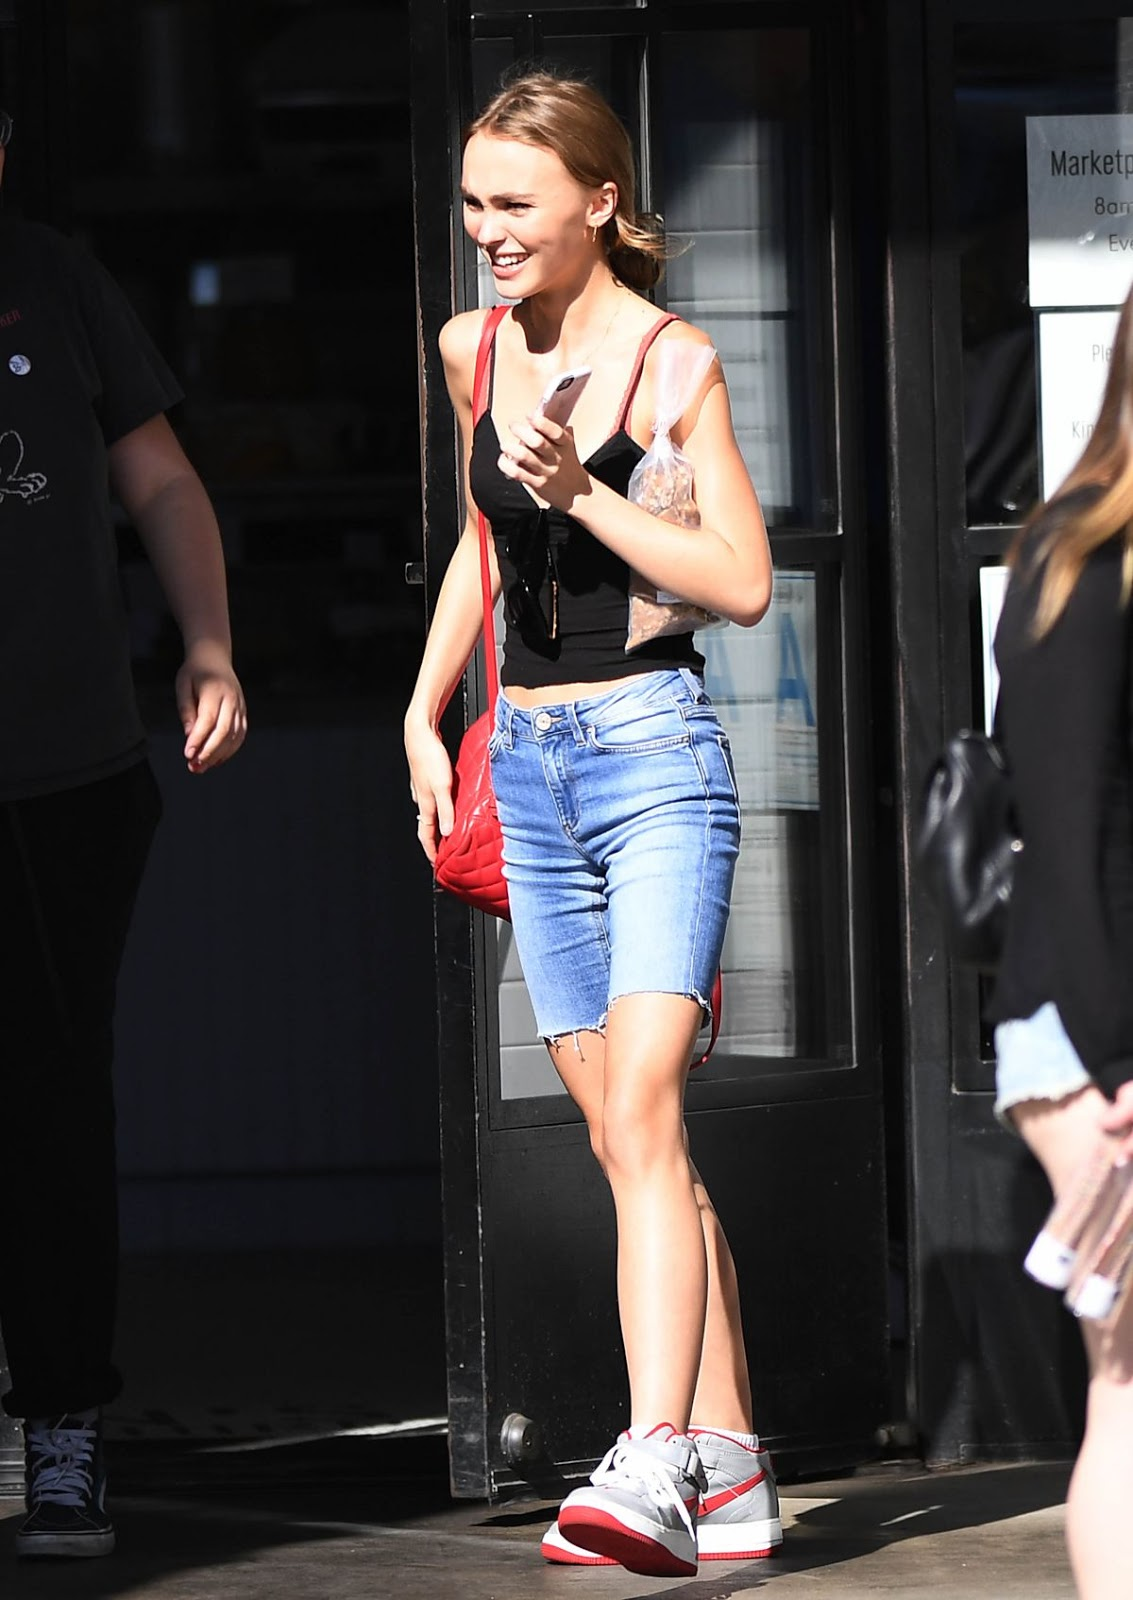 Lily-Rose Depp in Jeans Shorts